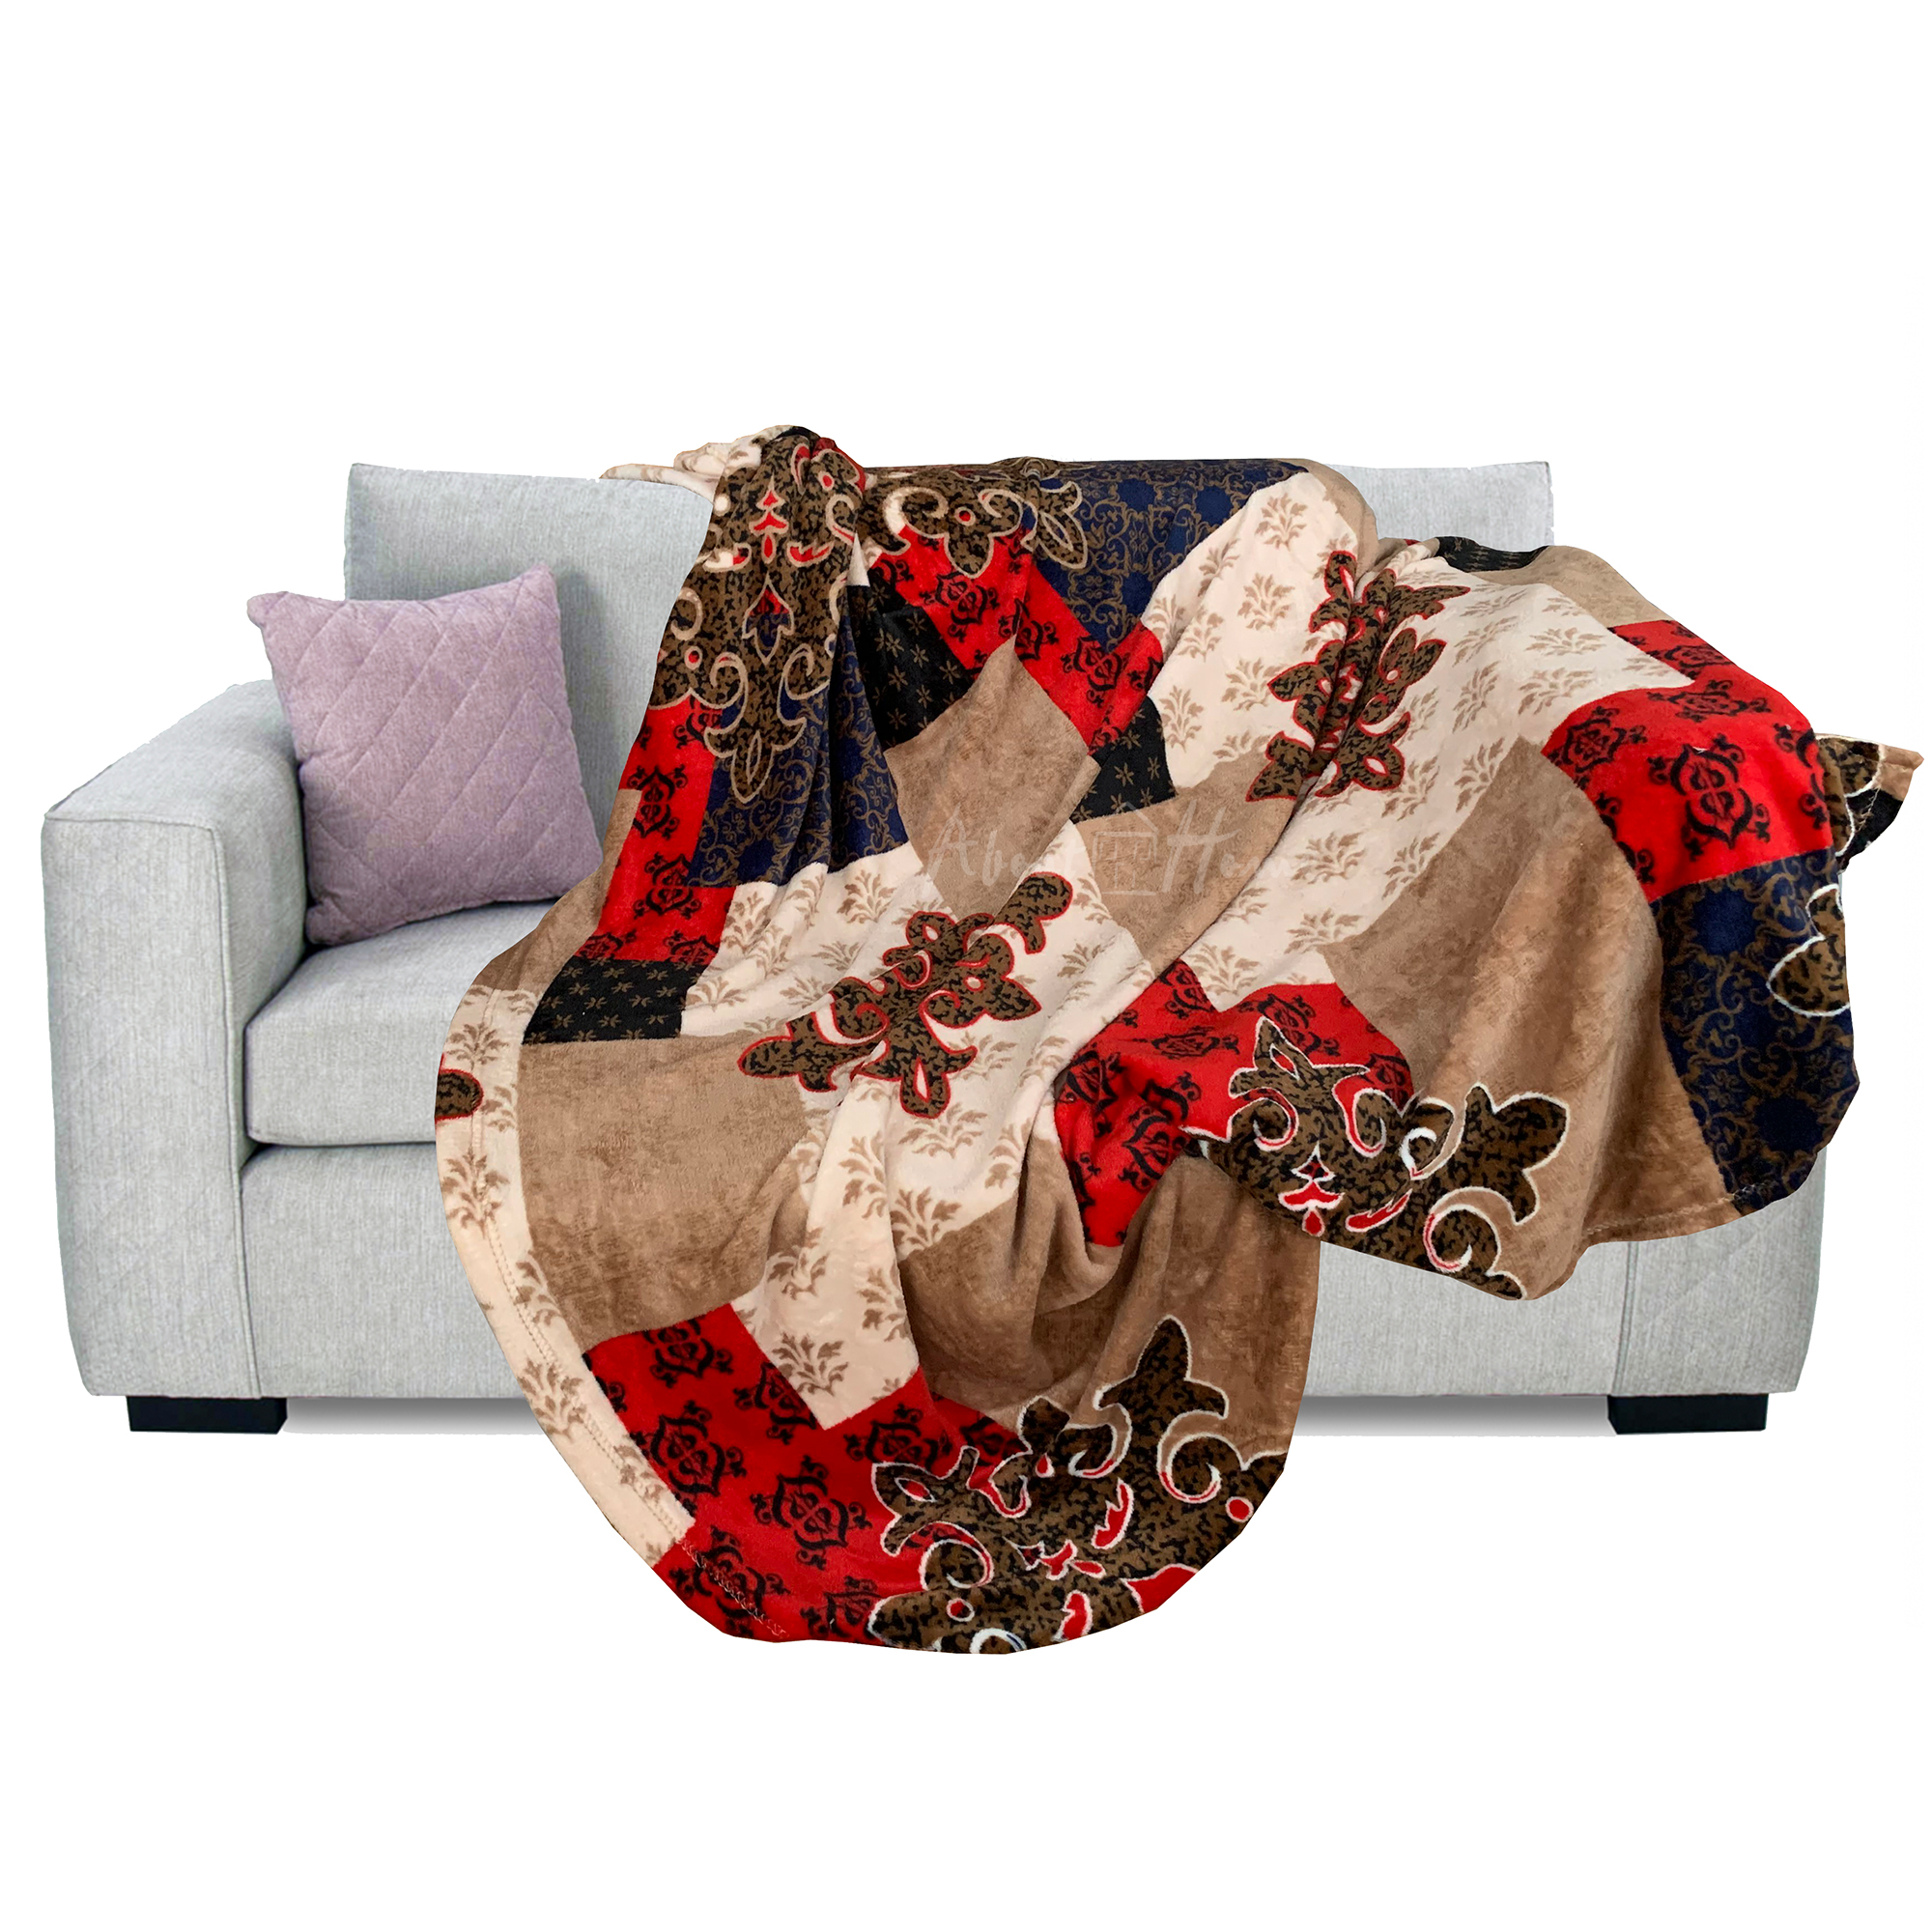 About Home printed flannel blanket throws brown